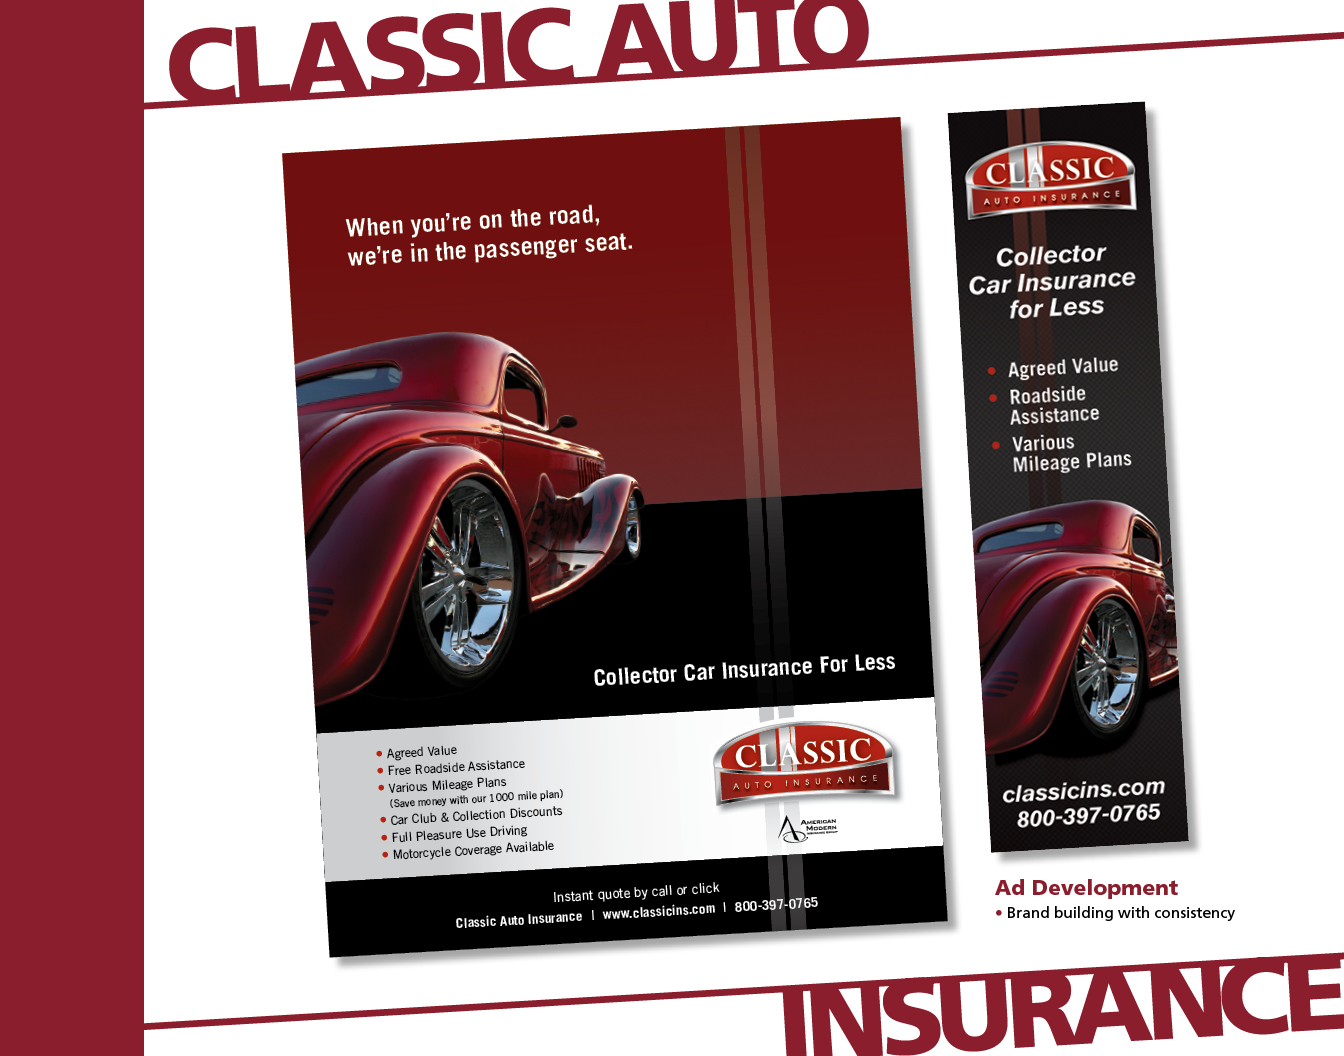 Classic Auto Insurance  Ryan Holohan. Where Do Bees Go In The Winter. Protein Synthesis Powerpoint. Electrolysis Hair Removal Philadelphia. Best Banks For Home Equity Loans. Dental Implant Surgery Masters Program Online. South Africa Safari Trip Dentist In Belton Mo. Product Management Training Courses. What Does An Audiologist Do Domain Name Info